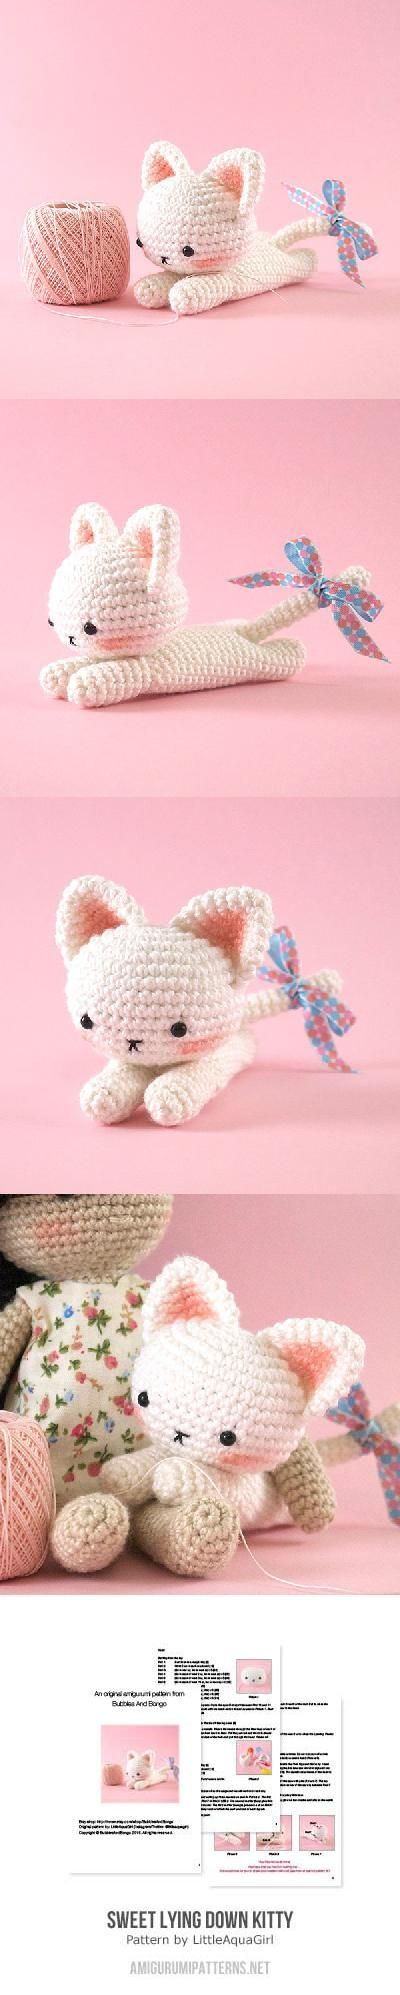 Sweet lying down kitty amigurumi pattern by LittleAquaGirl | Kleine ...